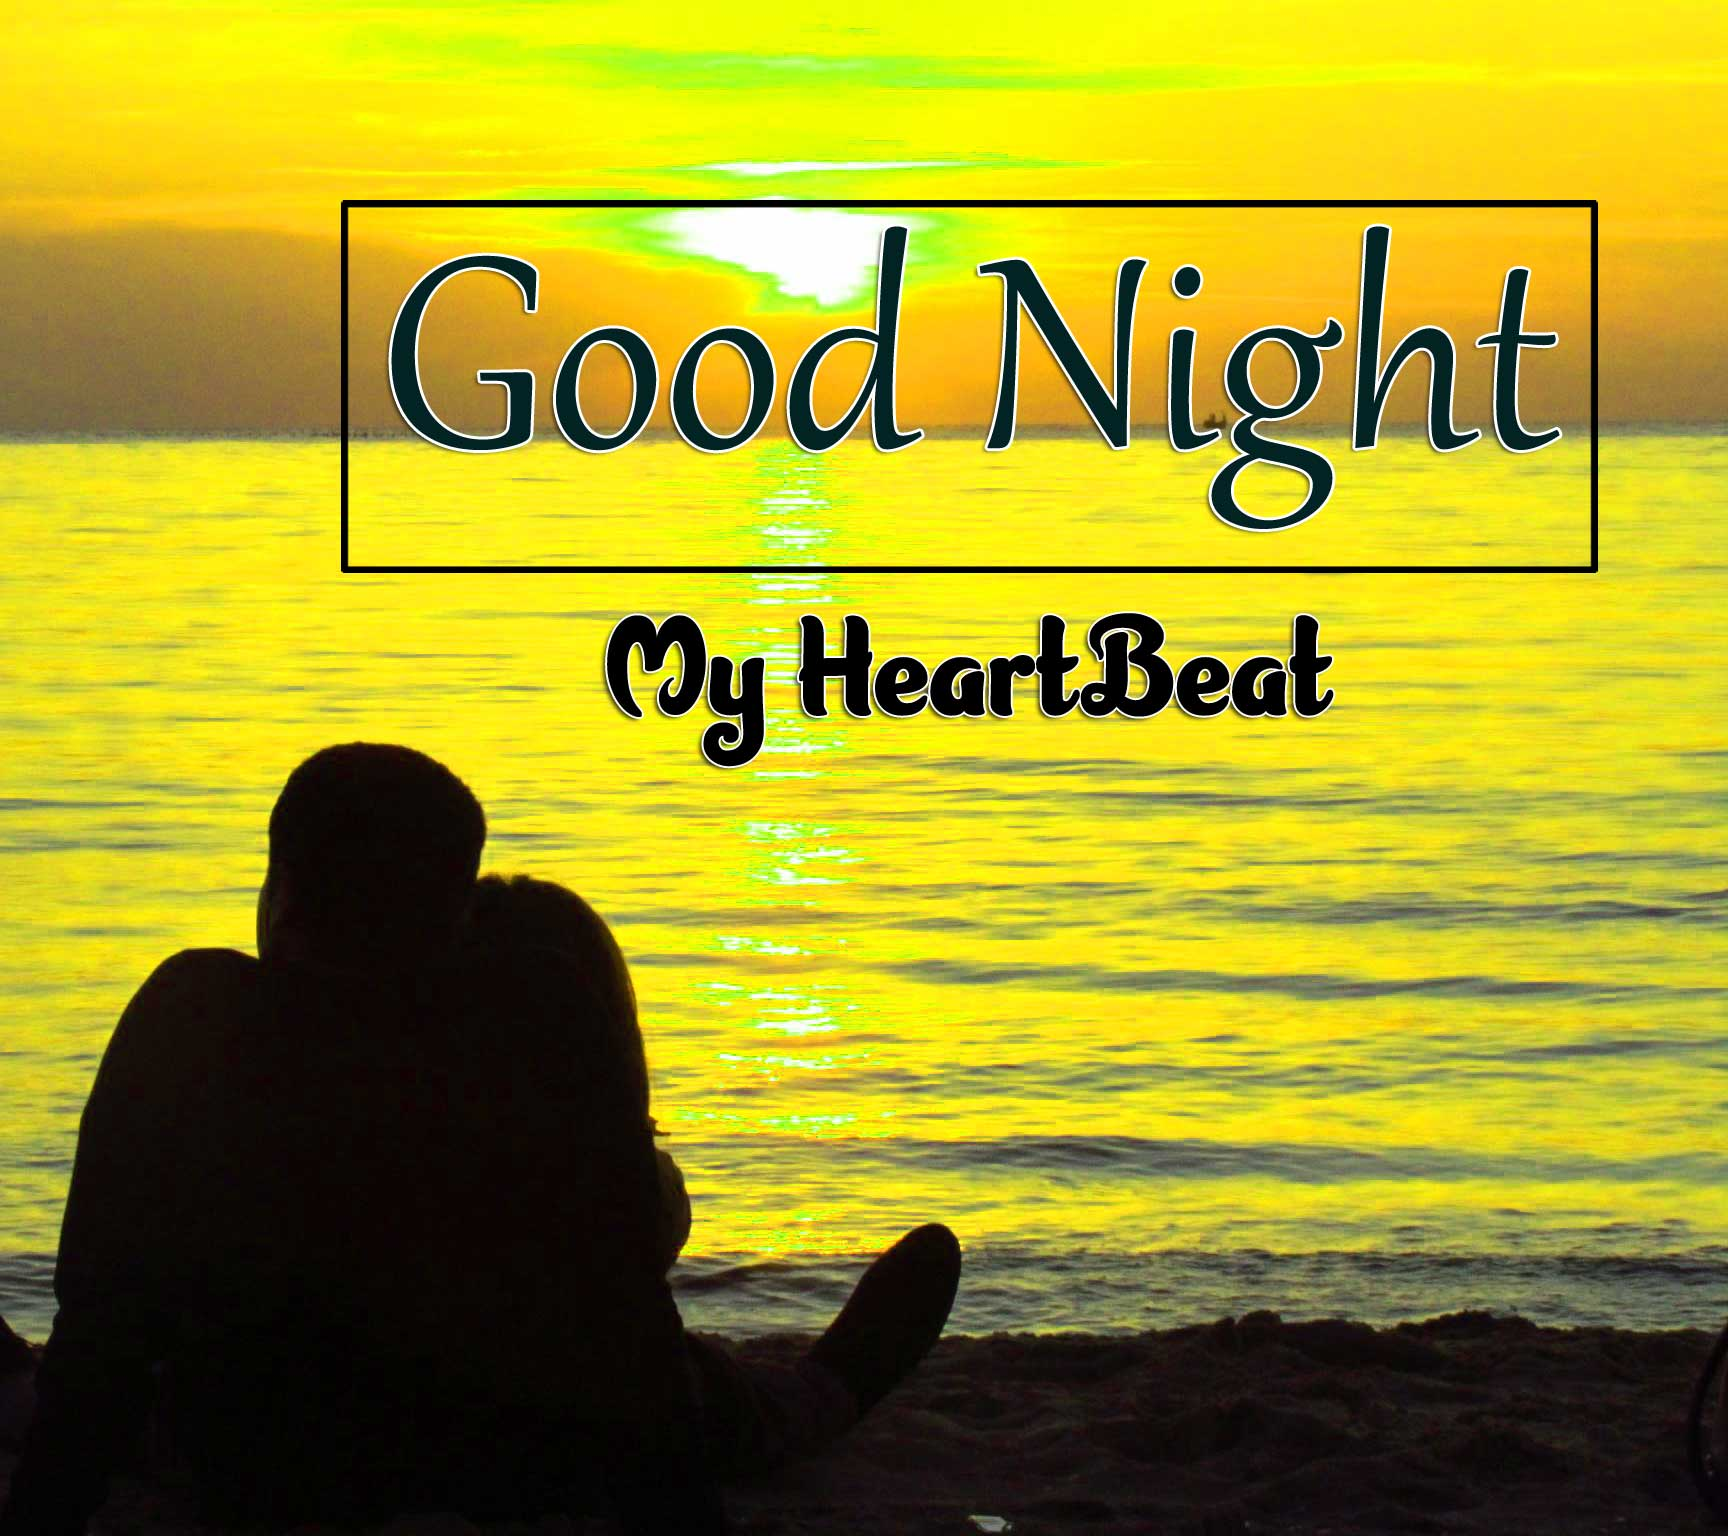 Latest Good Night Images hd